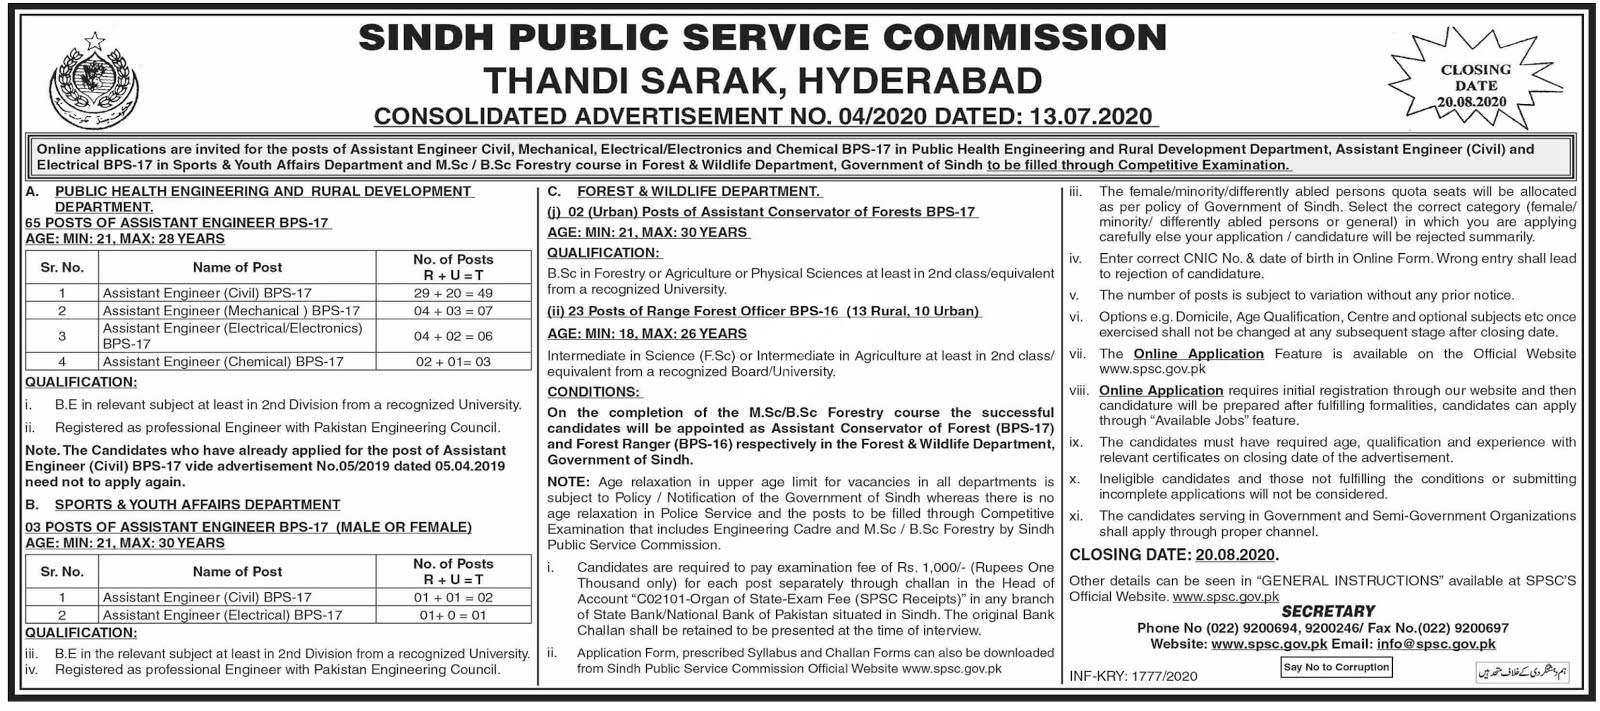 SPSC Jobs 2020 Latest Advertisement No.04/2020 Apply Online